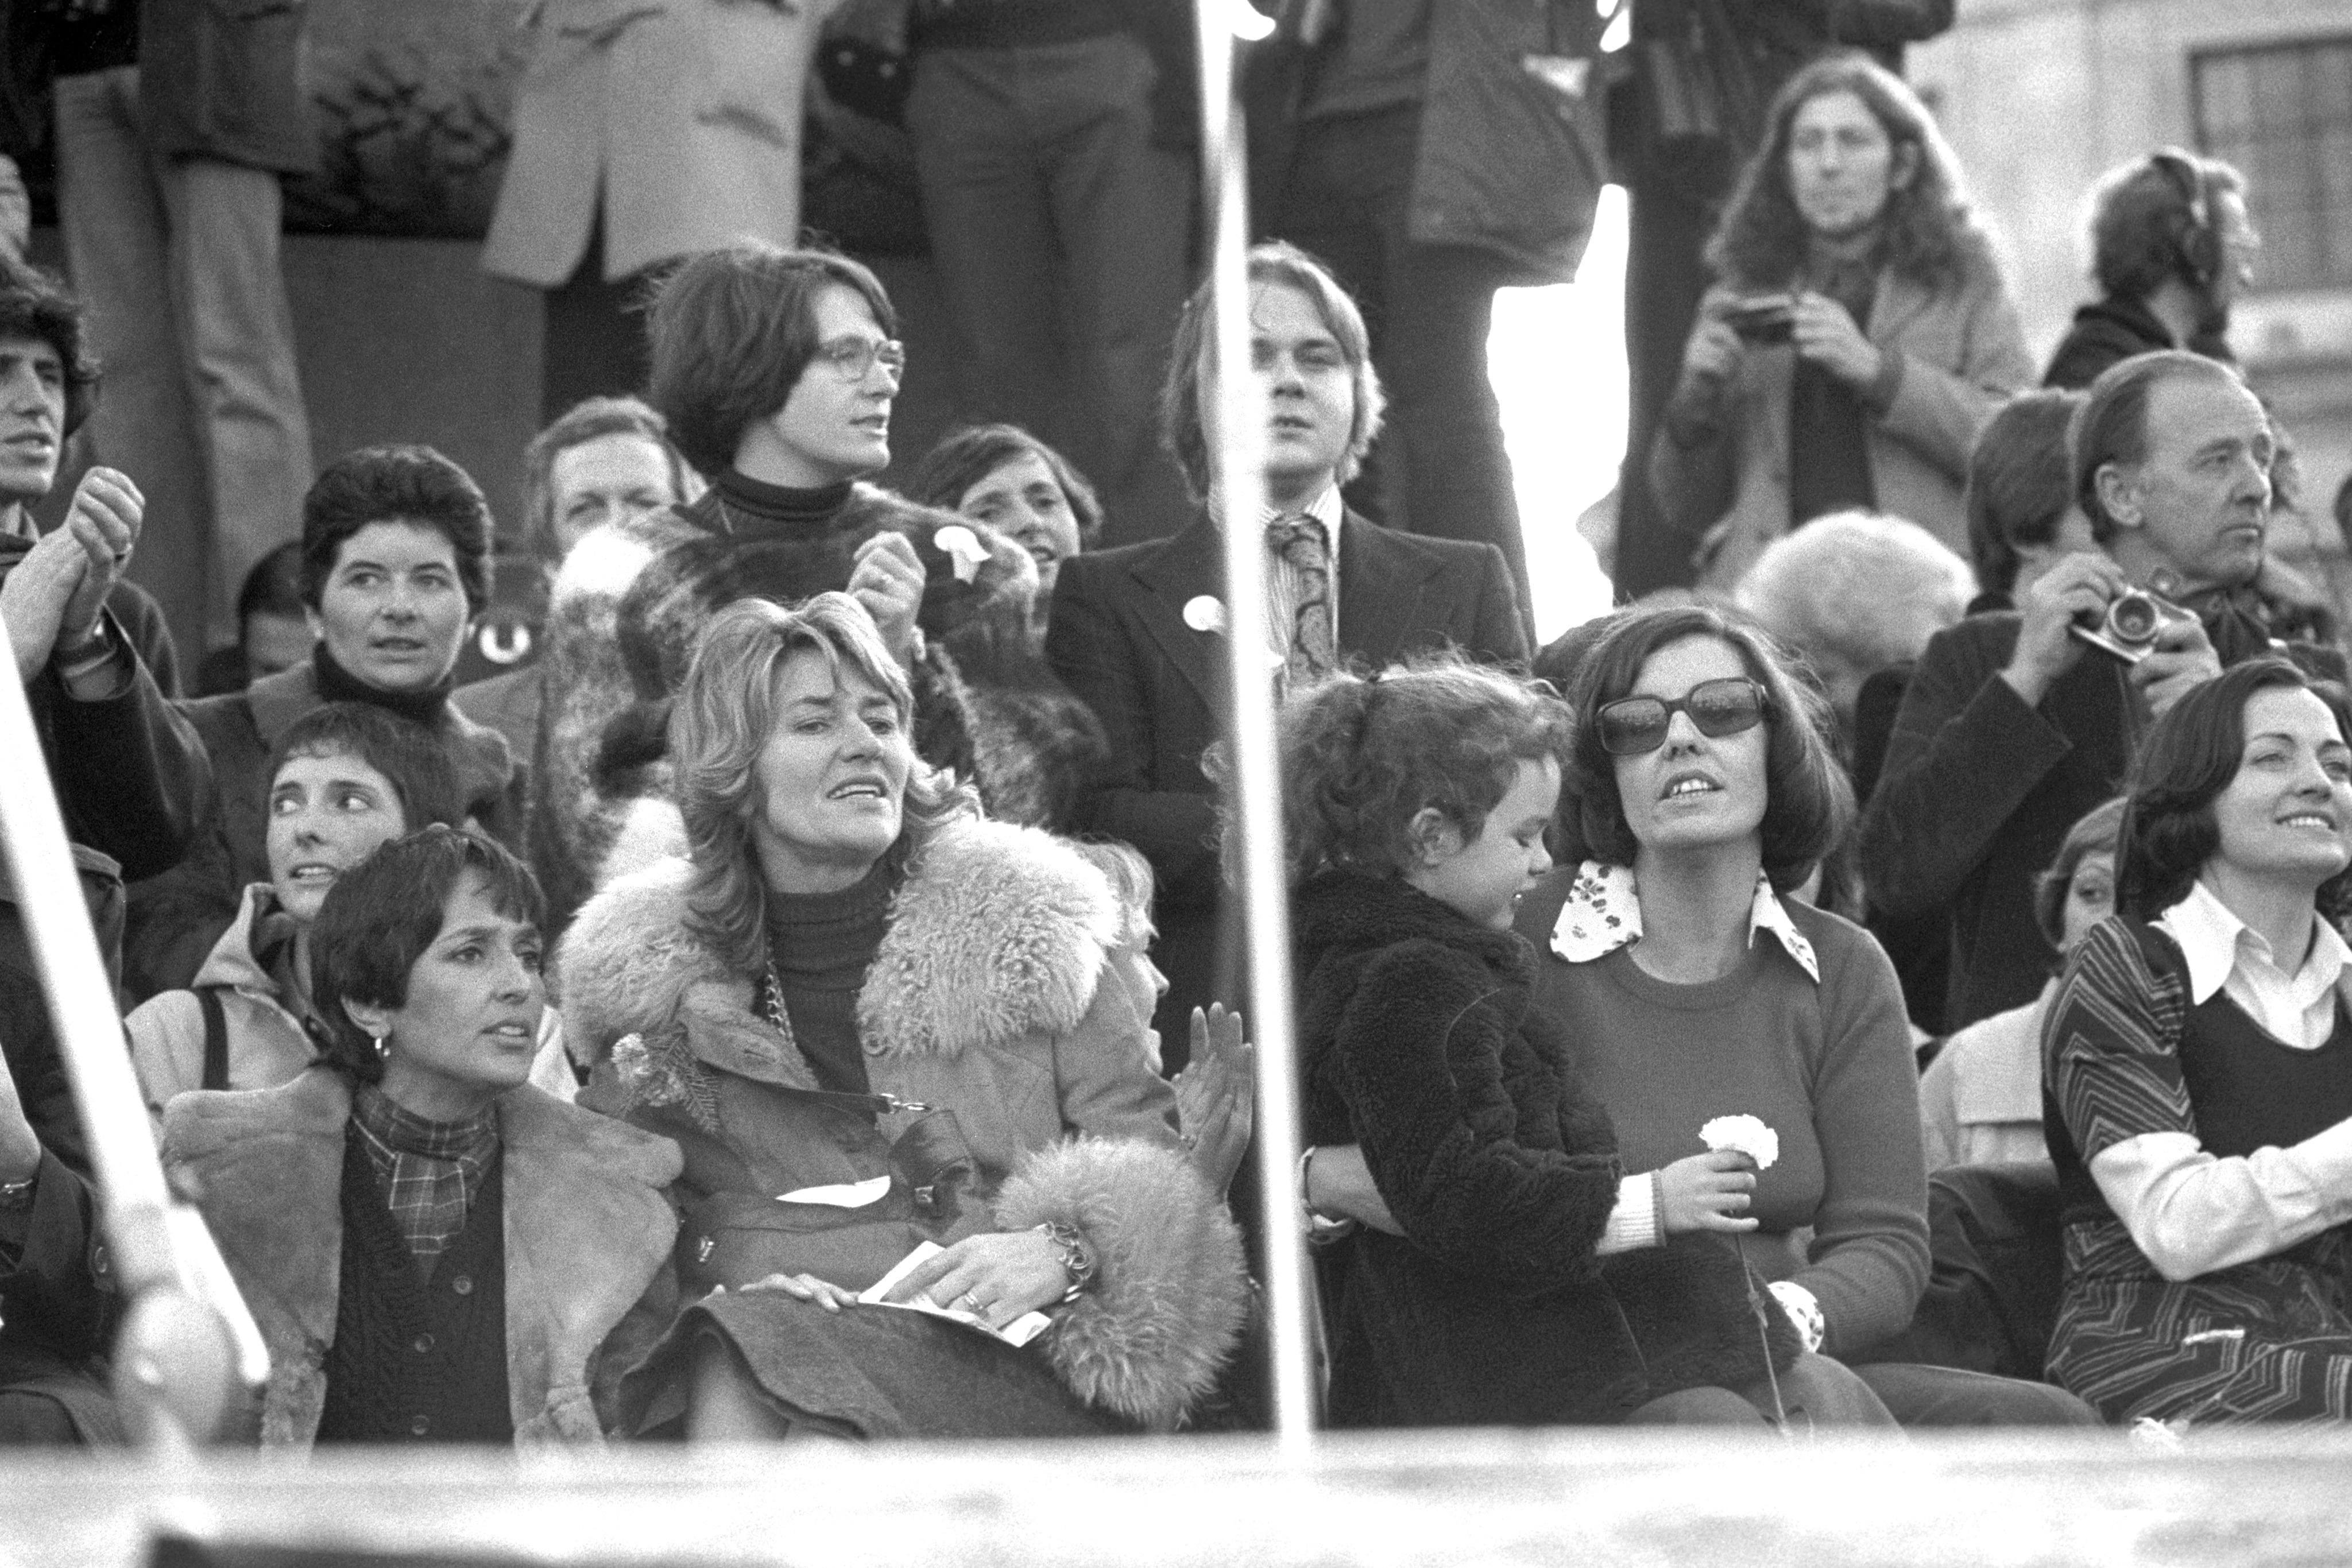 (From left) American folk singer Joan Baez, Jane Ewart-Biggs, widow of the murdered British Ambassador to Dublin Betty Williams wearing dark glasses and Mairead Corrigan on arrival to Trafalgar Square in London after the march of Ulster Peace People. 27th November 1976.